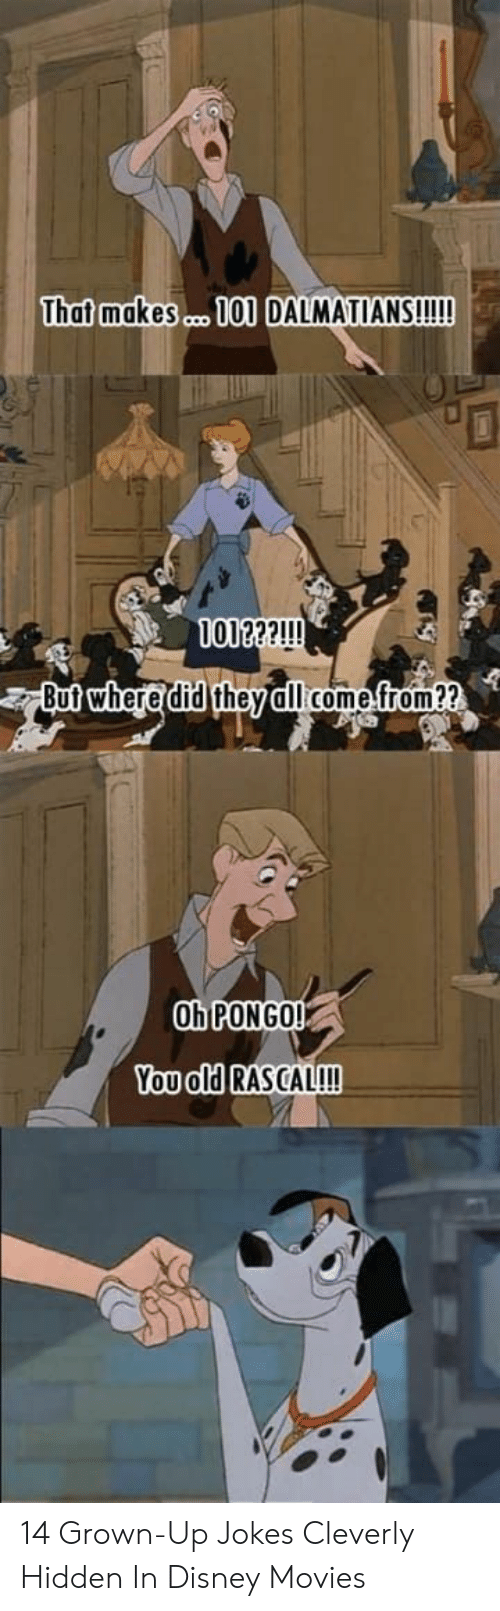 Disney Movies: That makesm 10 DALMATIANS!!!!  0122?!!!  But where did theydlllcome from??  Oh PONGO!  You old RASCAL!!! 14 Grown-Up Jokes Cleverly Hidden In Disney Movies